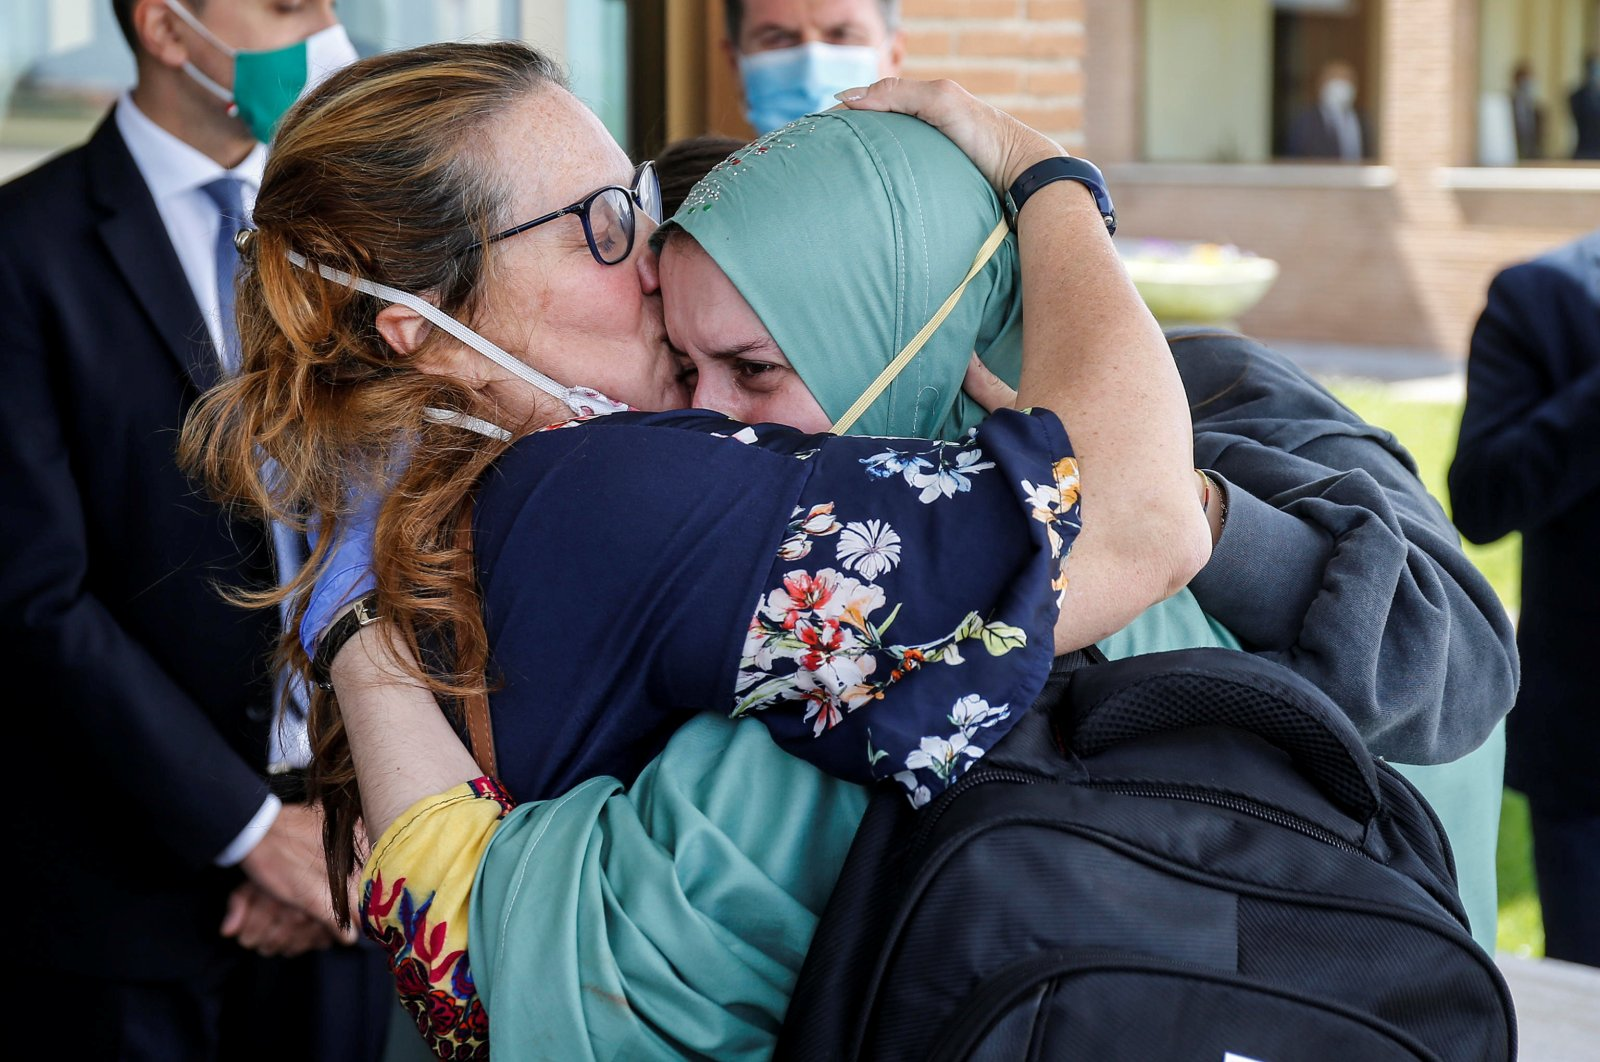 Silvia Romano, an Italian aid worker who was kidnapped by gunmen in Kenya 18 months ago, is kissed by her mother, Francesca Fumagalli, at Ciampino military airport in Rome, Italy, May 10, 2020. (Reuters Photo)